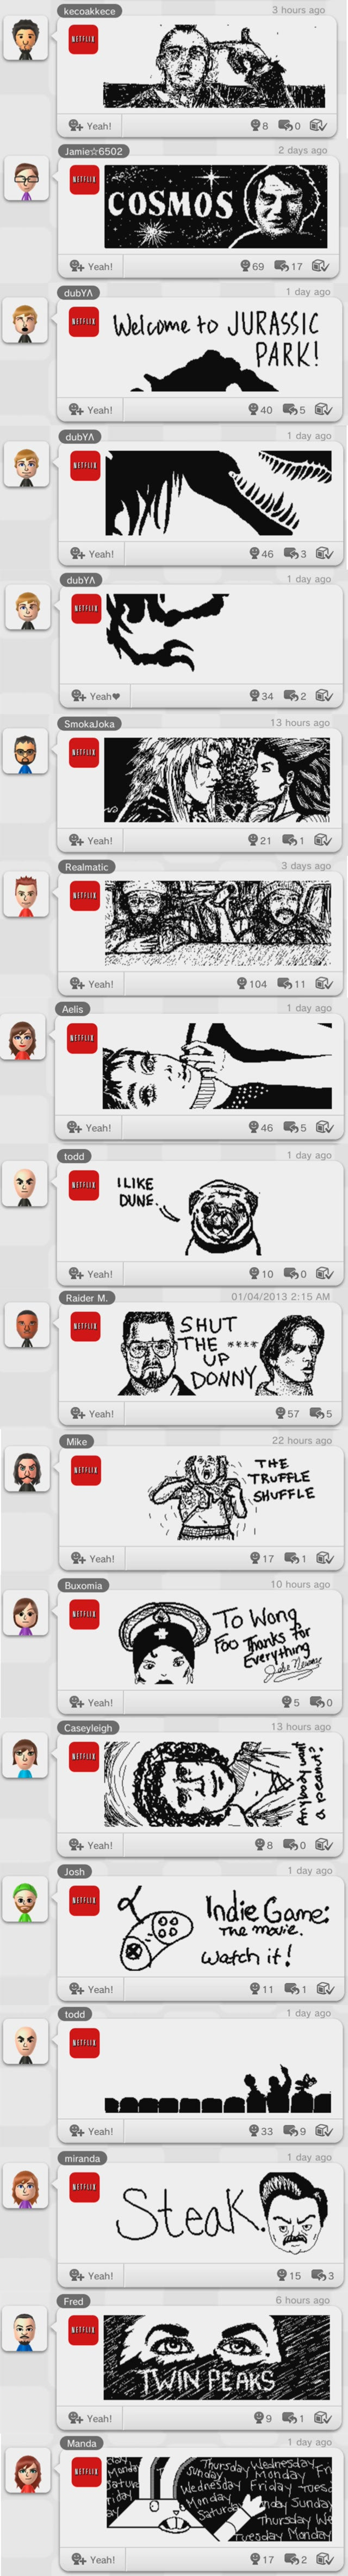 From Carl Sagan to Cheech & Chong: The Netflix Board is The Most Diverse Part of the Miiverse